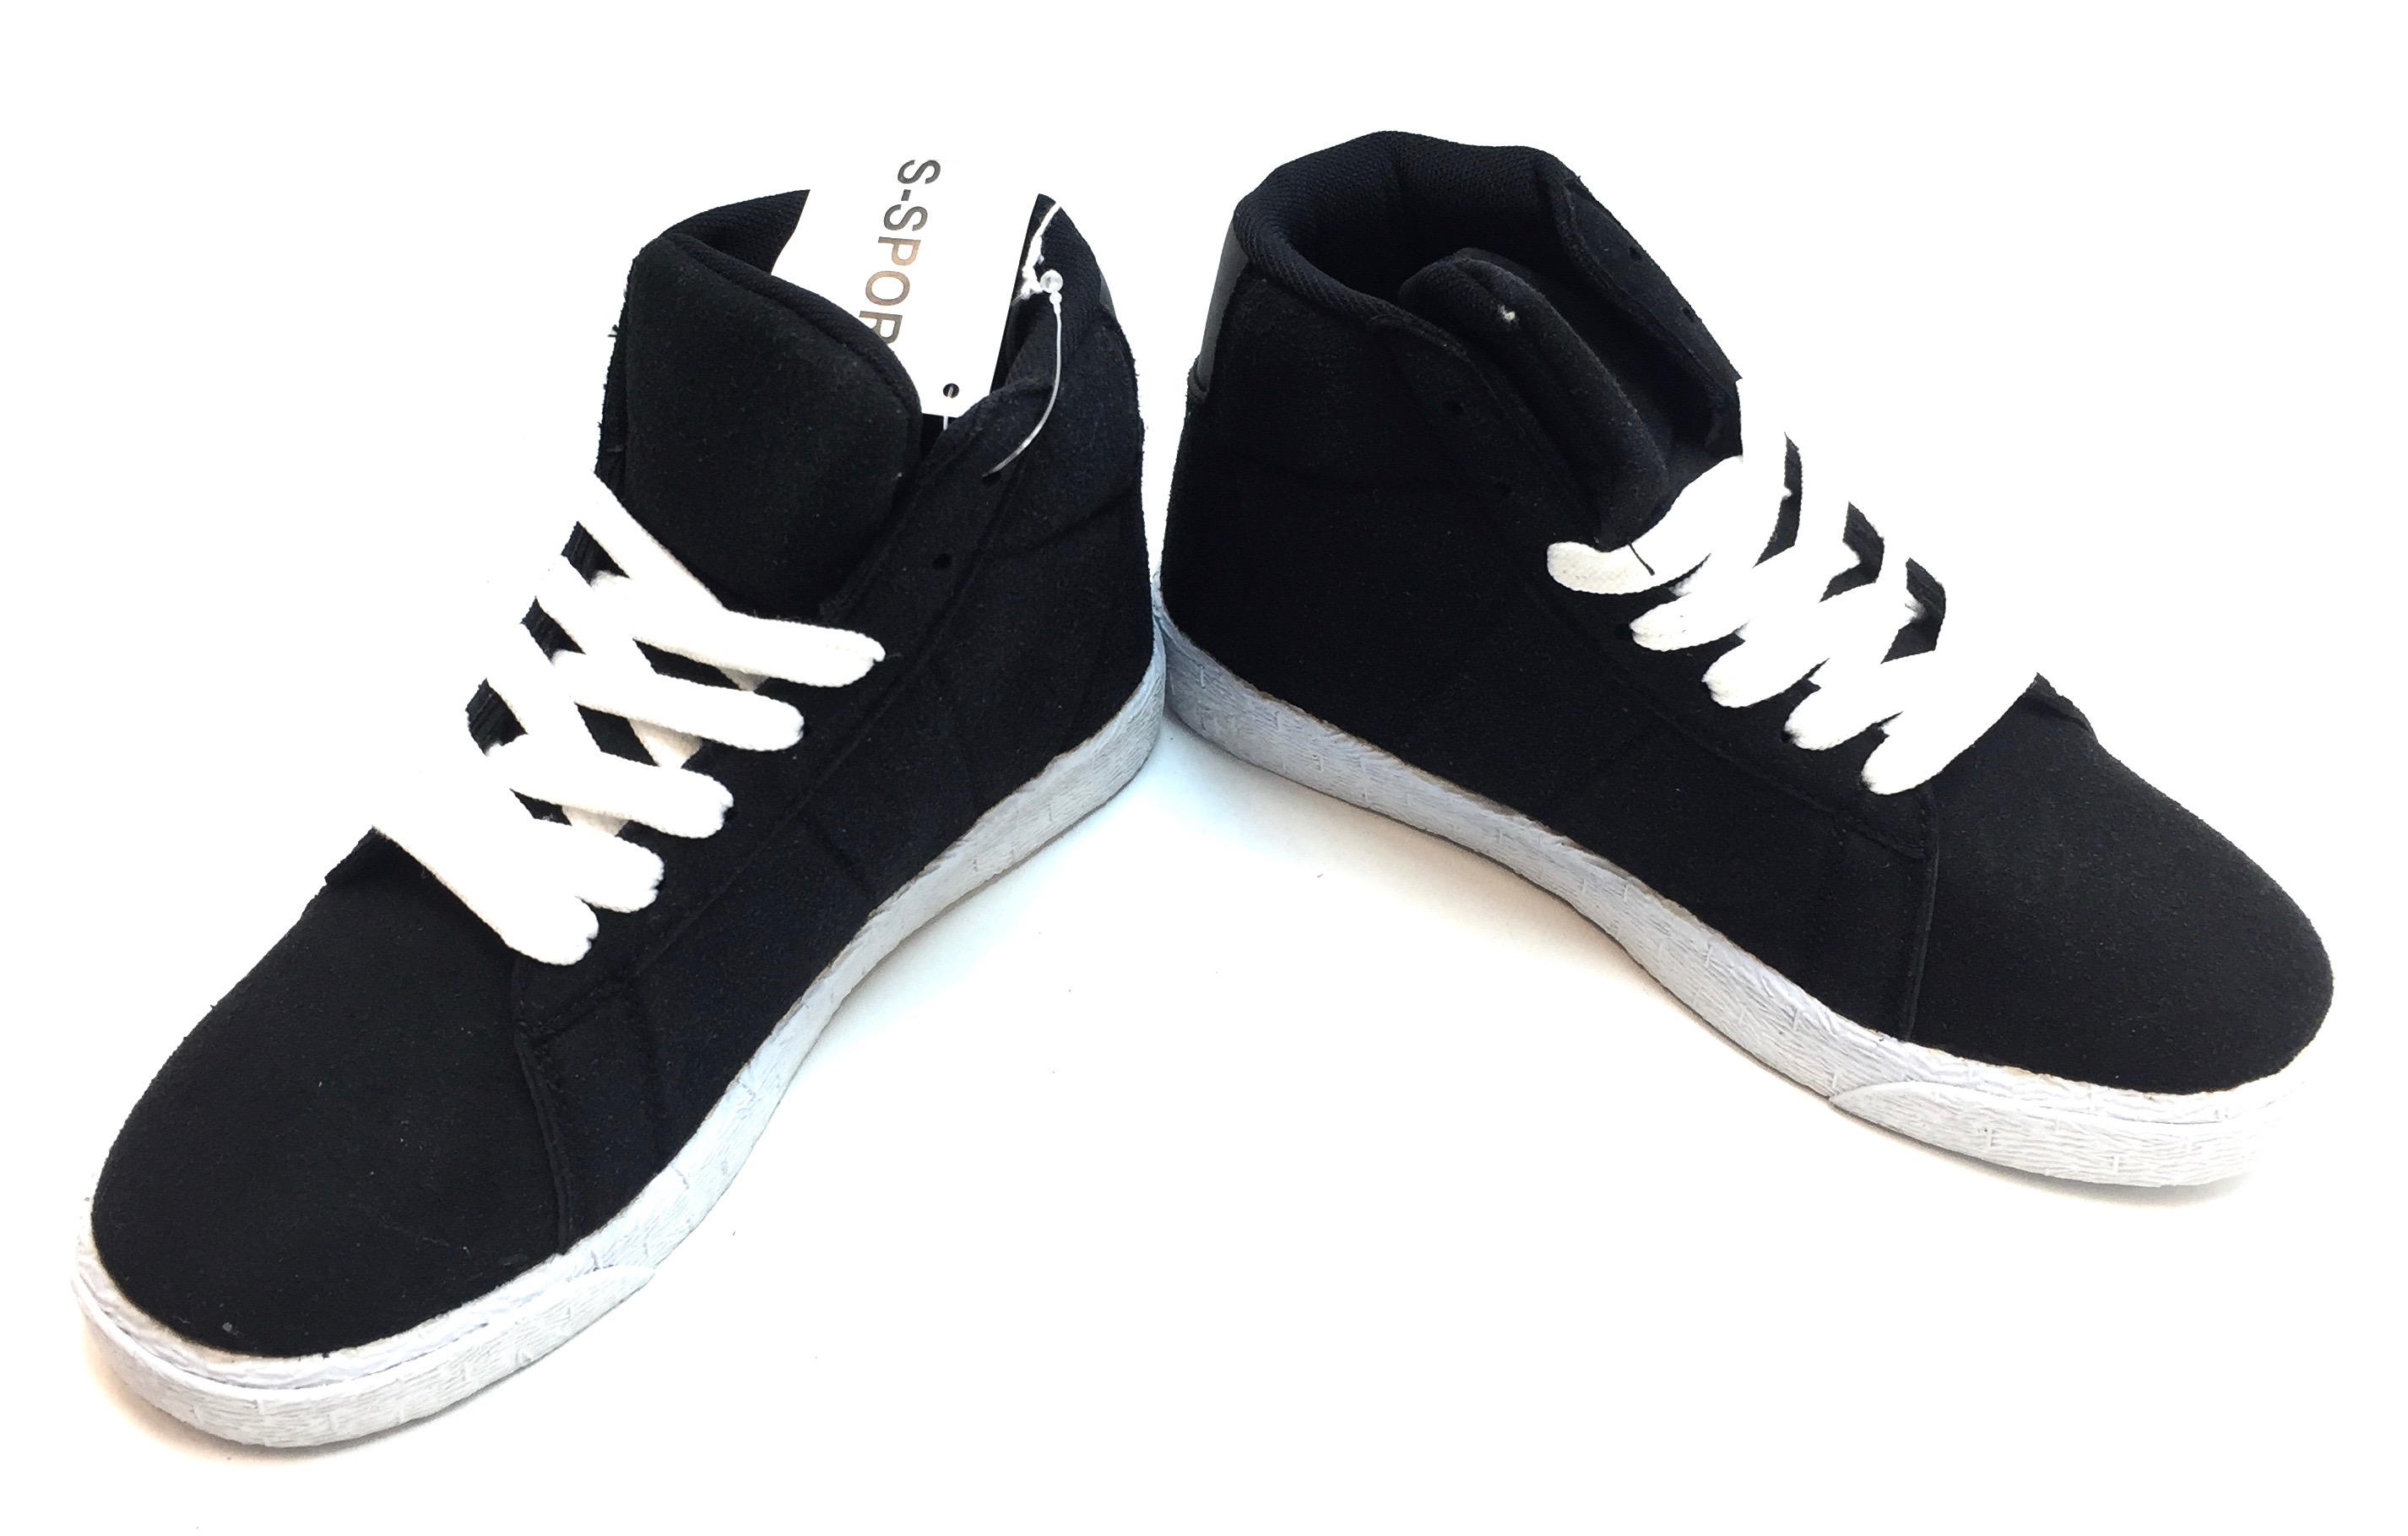 Womens Hightop Sneaker Black/White